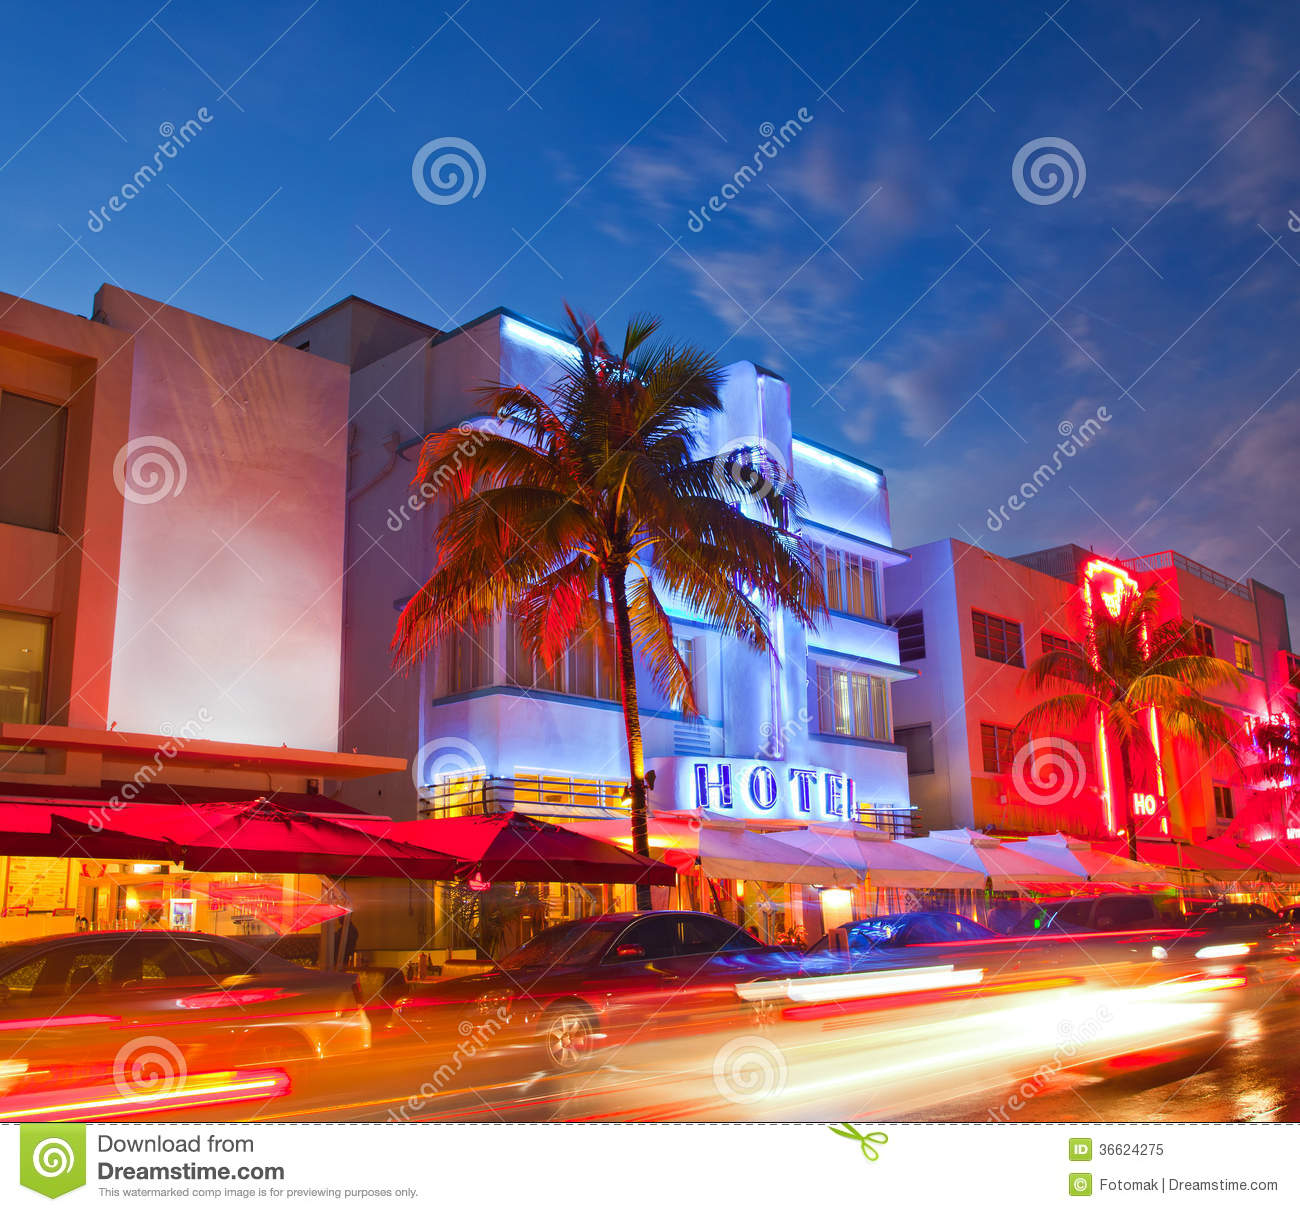 miami beach florida hotels and restaurants at sunset royalty free stock photos